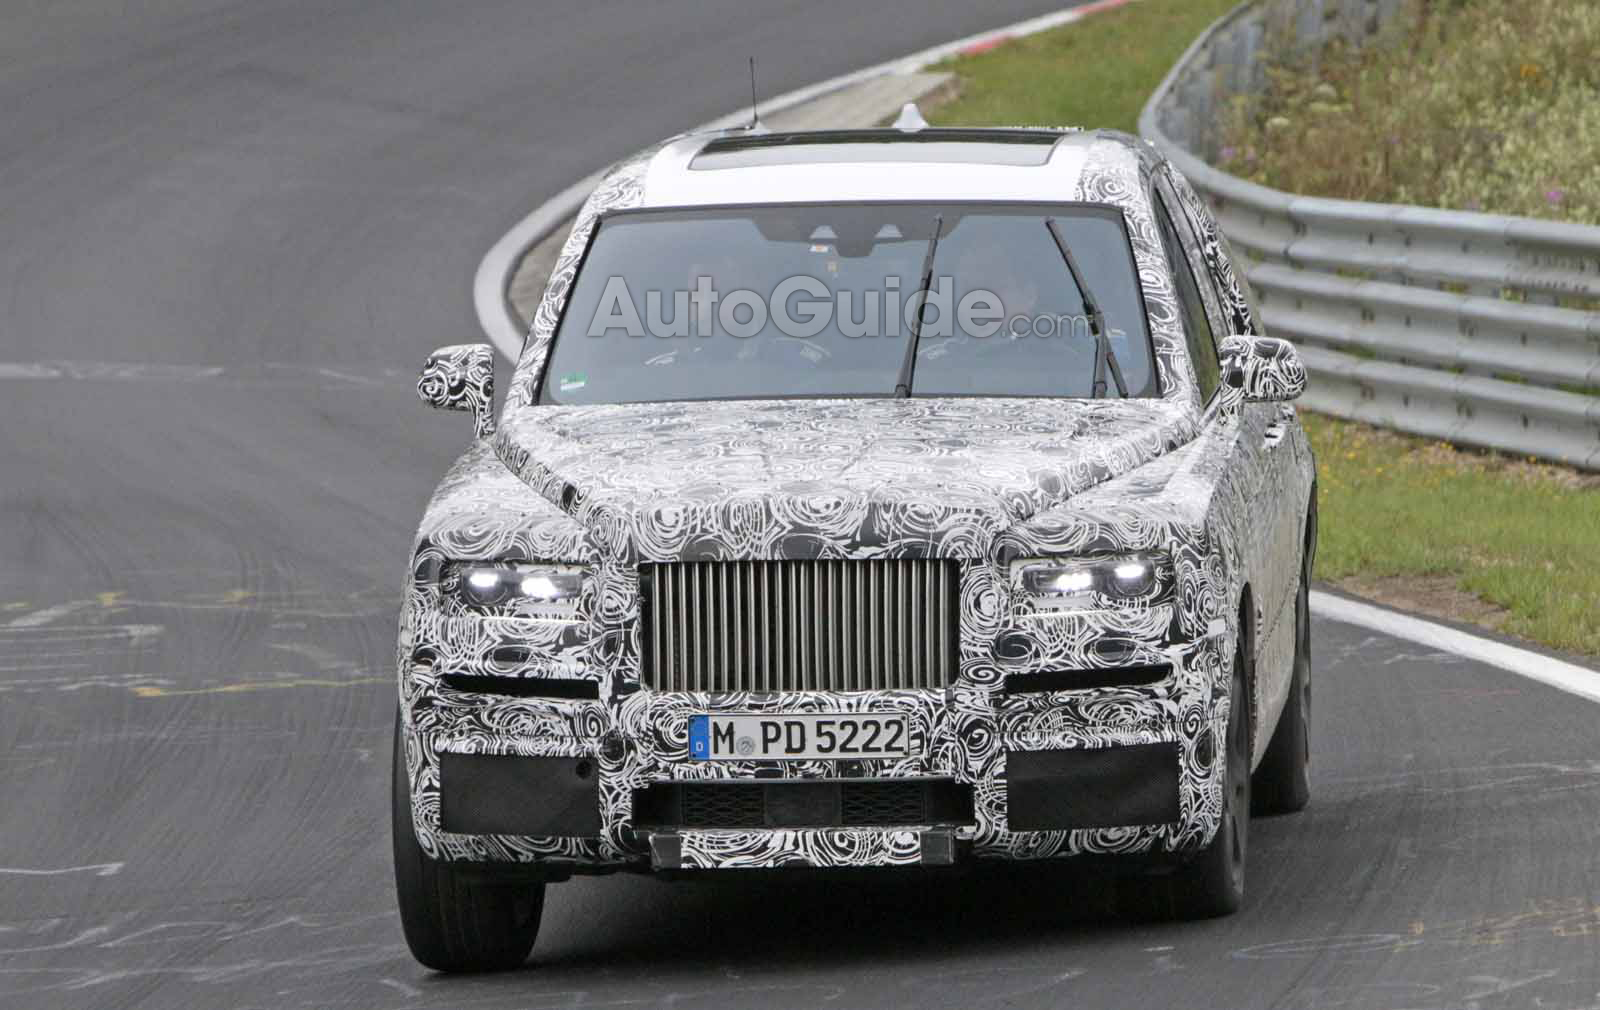 Gen Rolls-Royce Phantom unveiled